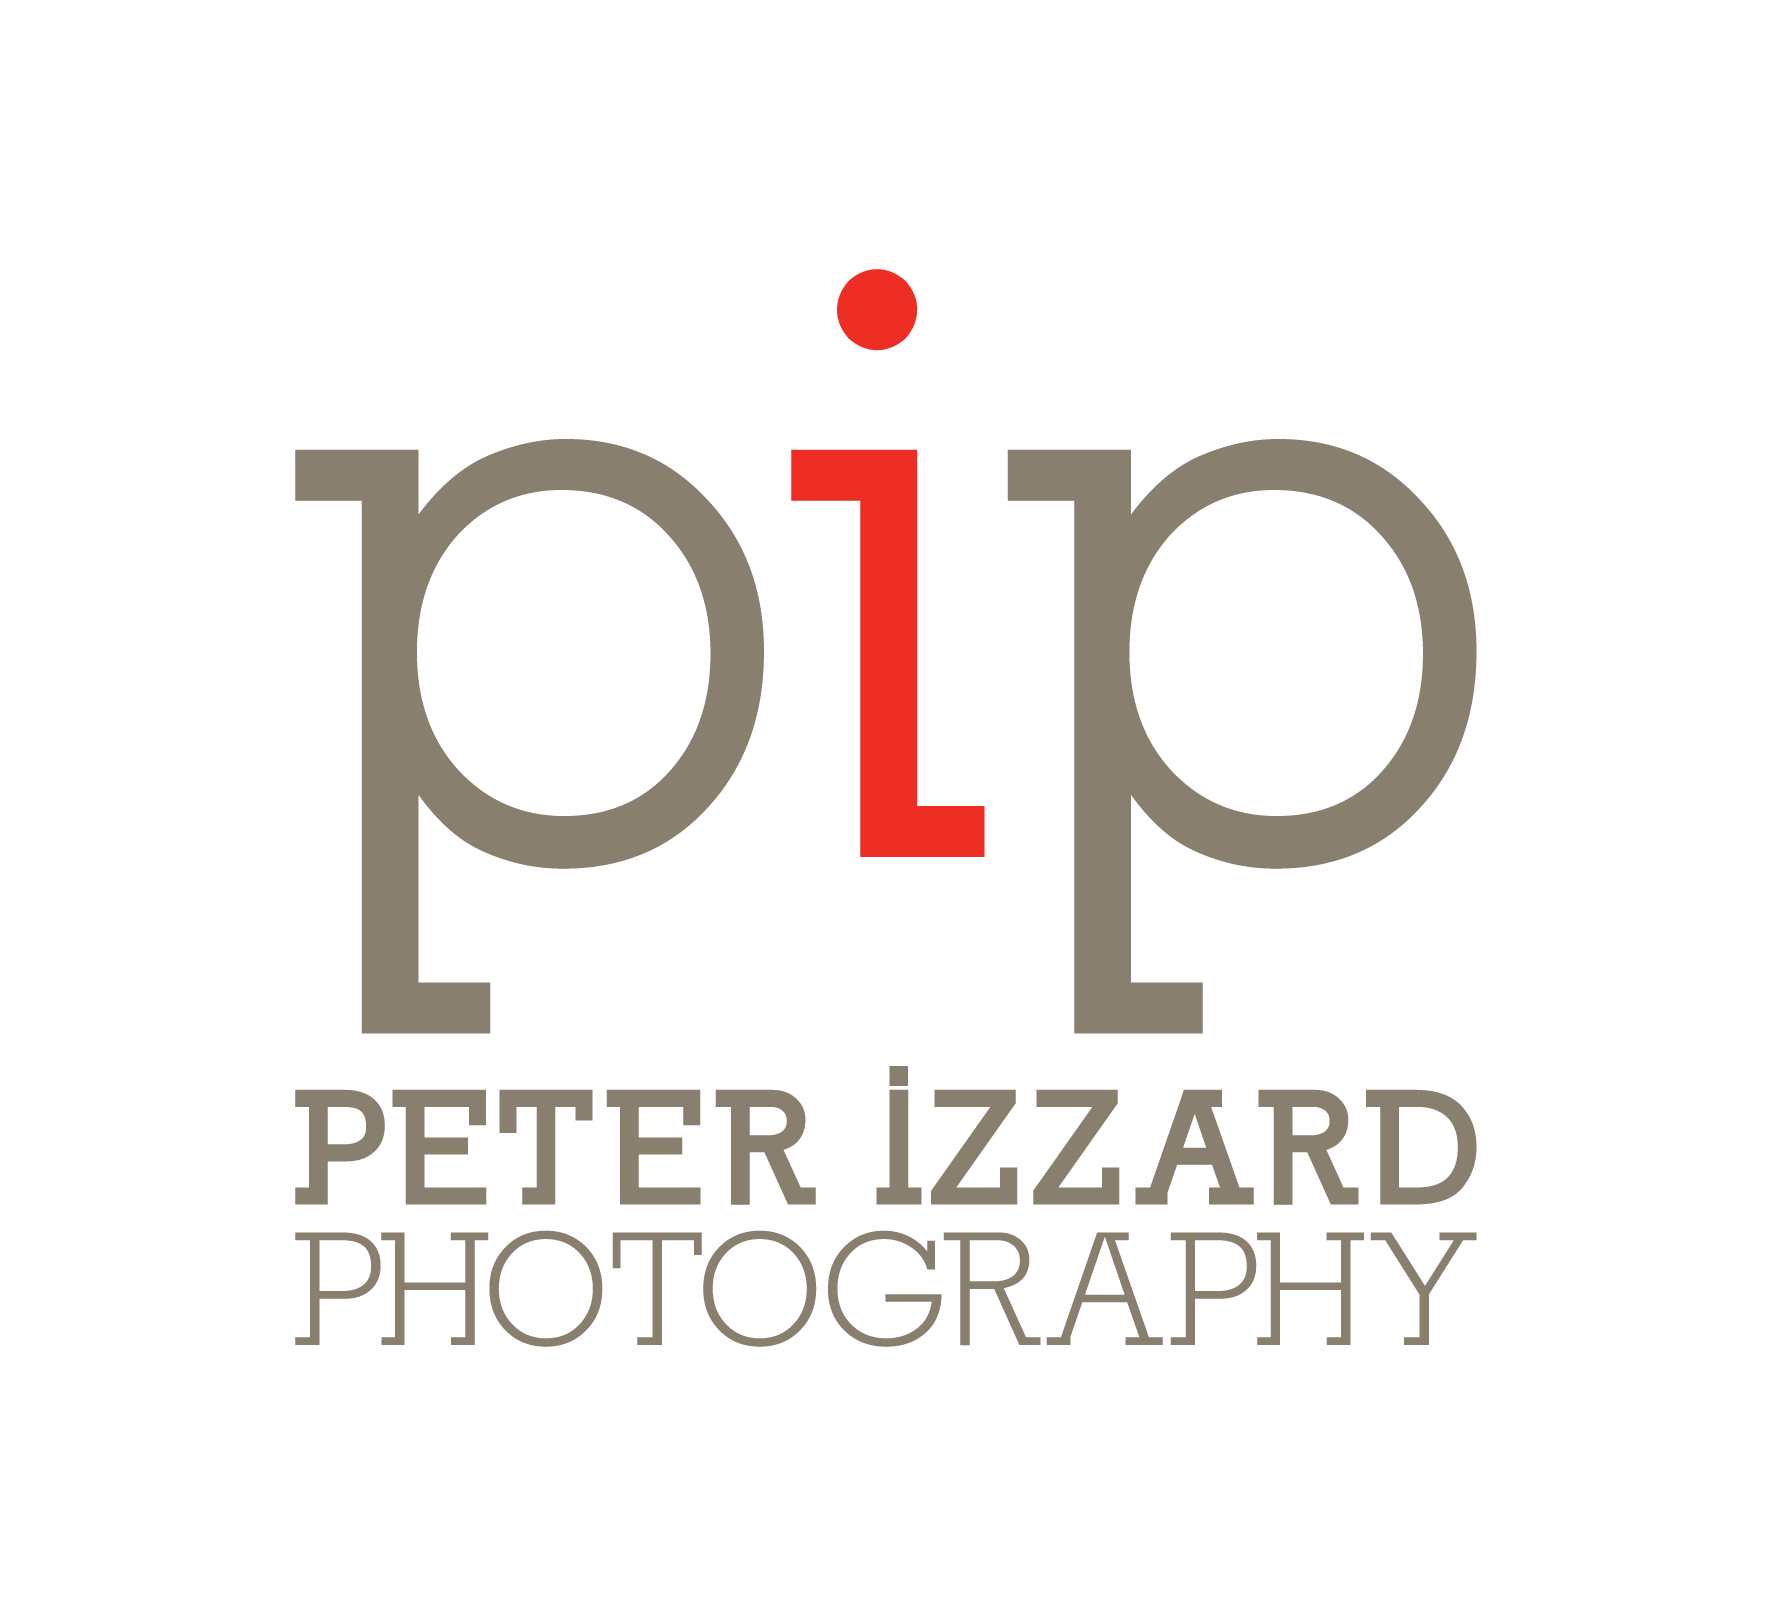 Peter Izzard Photography